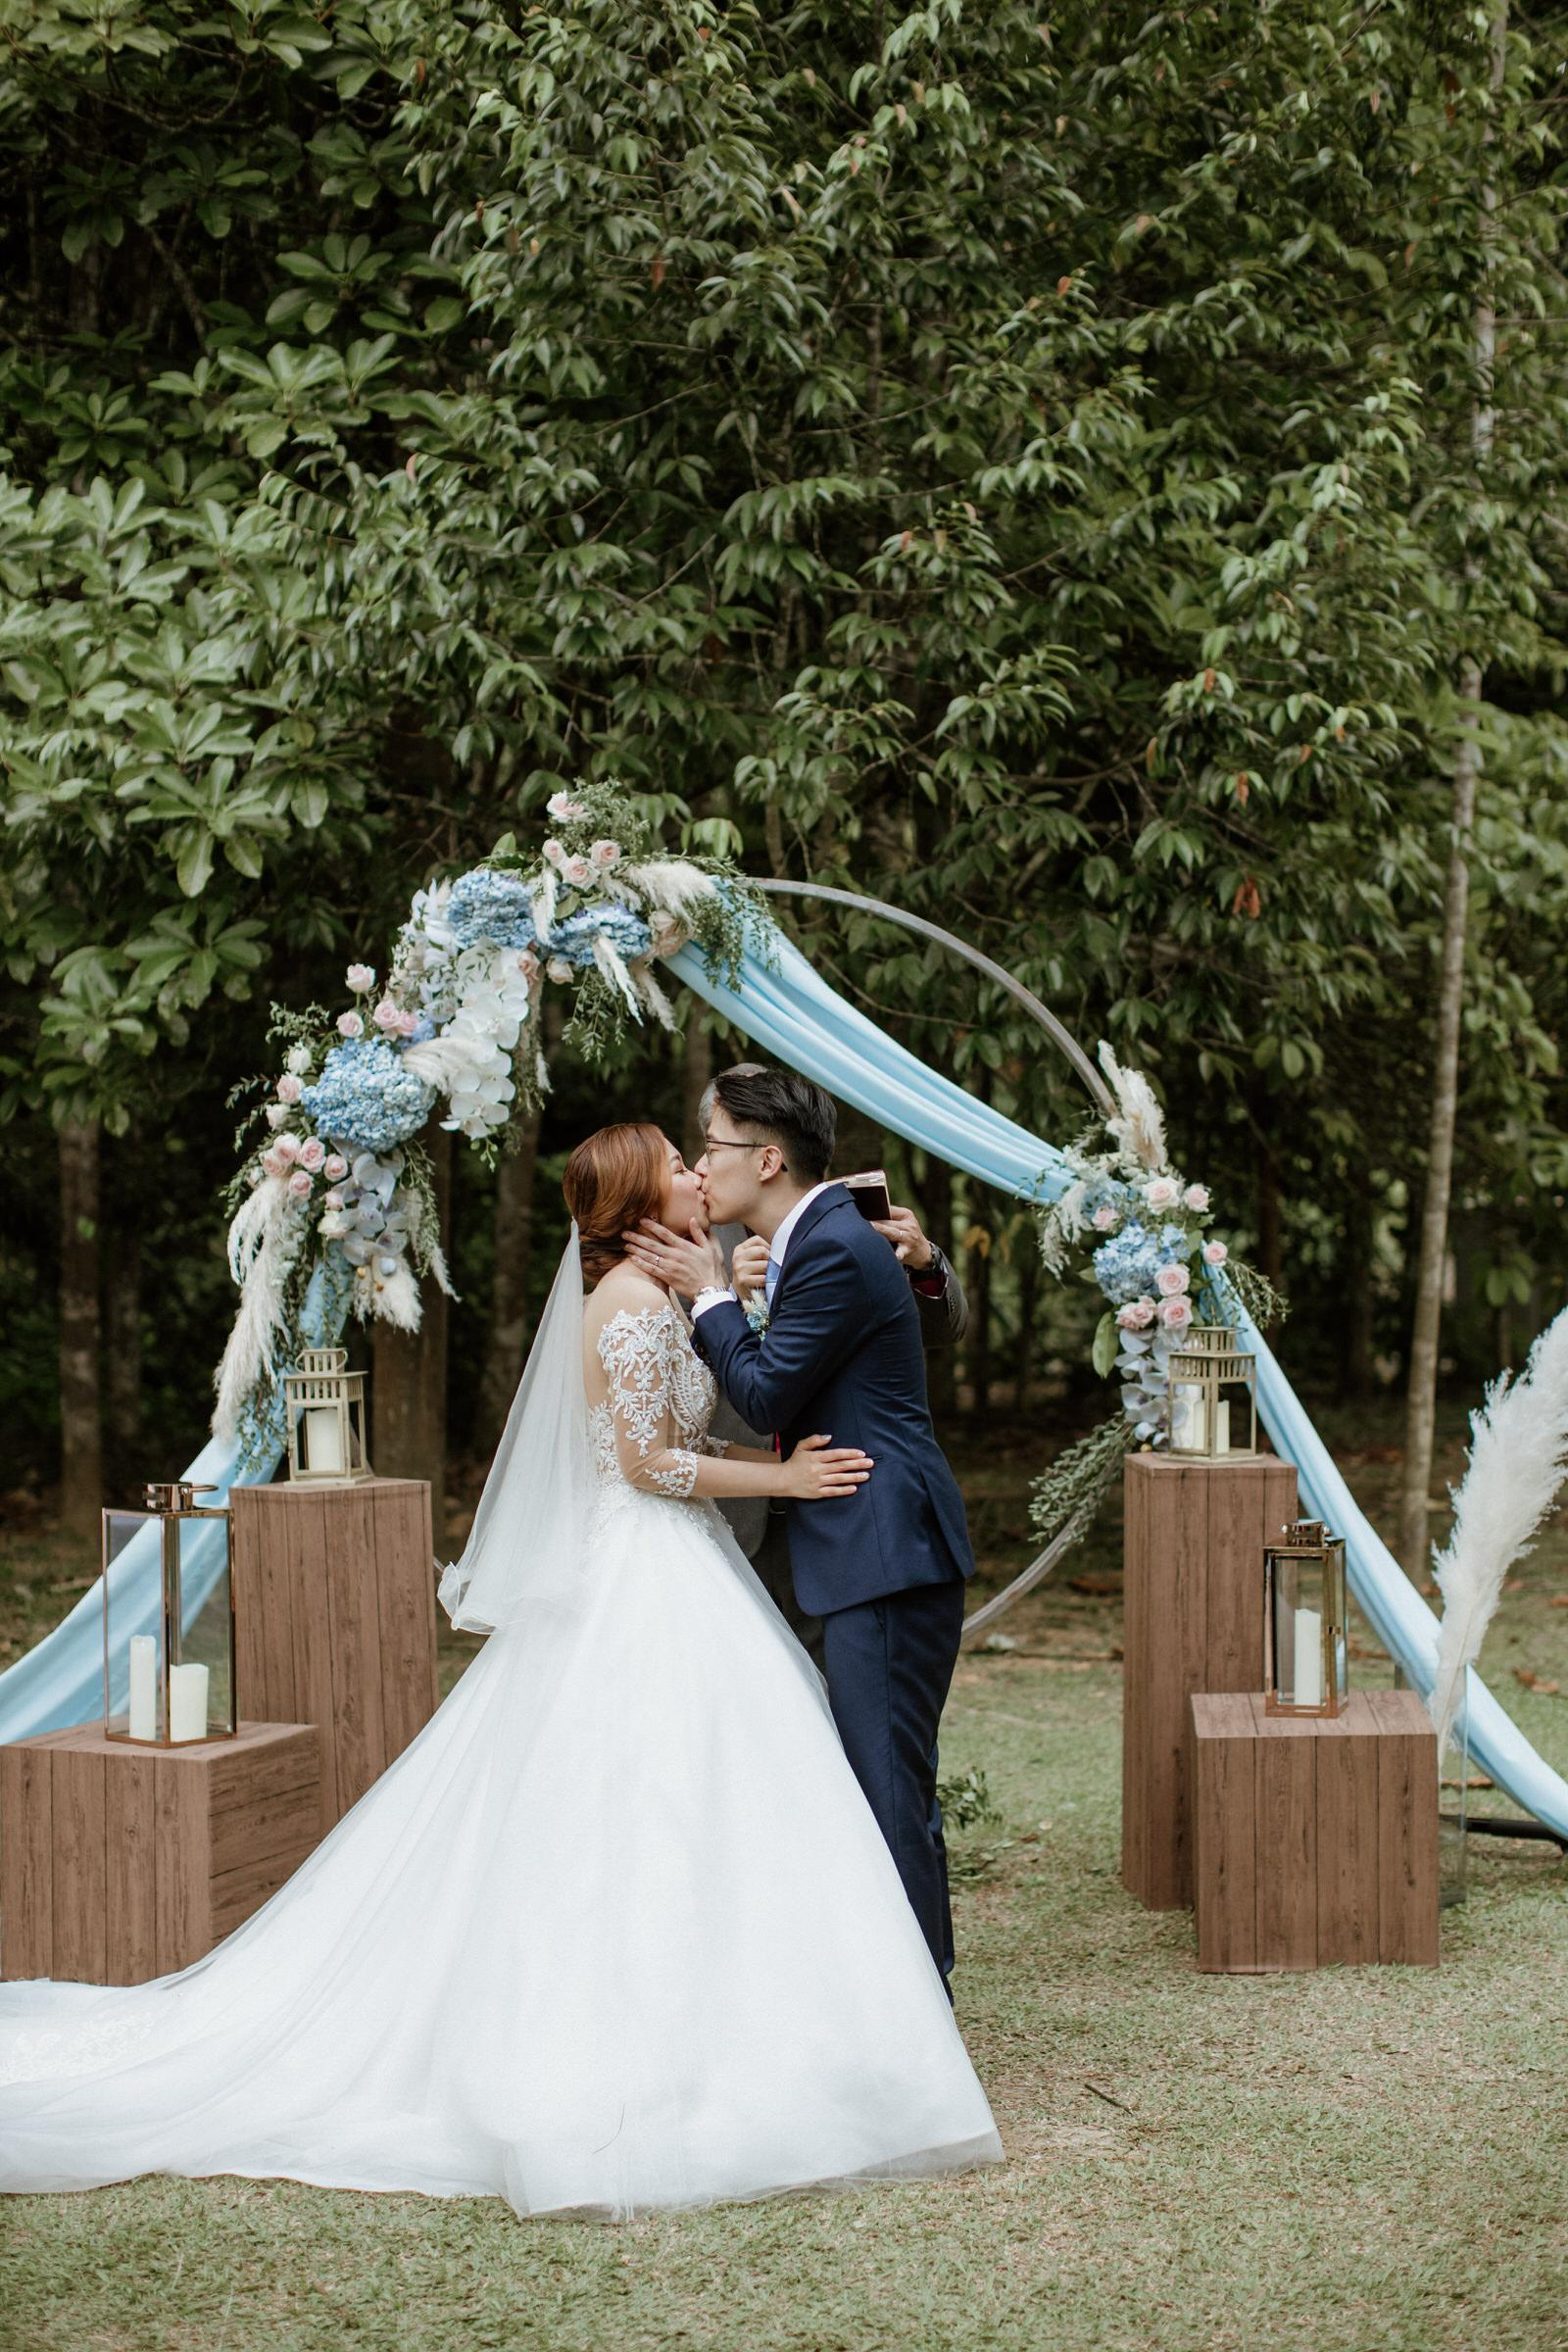 Couple Kiss Rings Exchange Ceremony Tanarimba Rustic Garden Weding Janda baik Decoration Photobooth Cliff Choong Photography